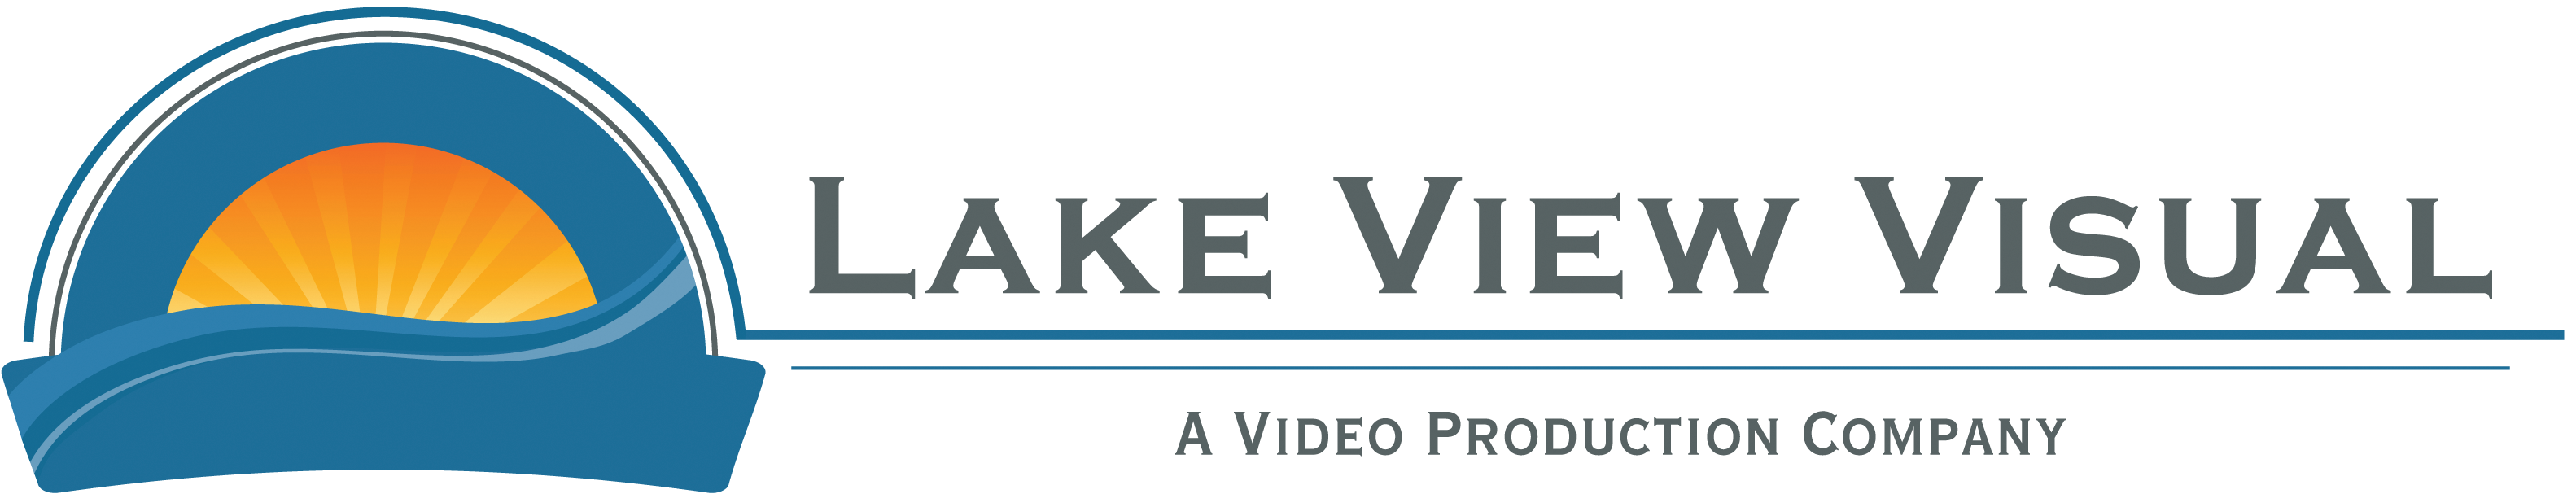 Lake View Visual, LLC